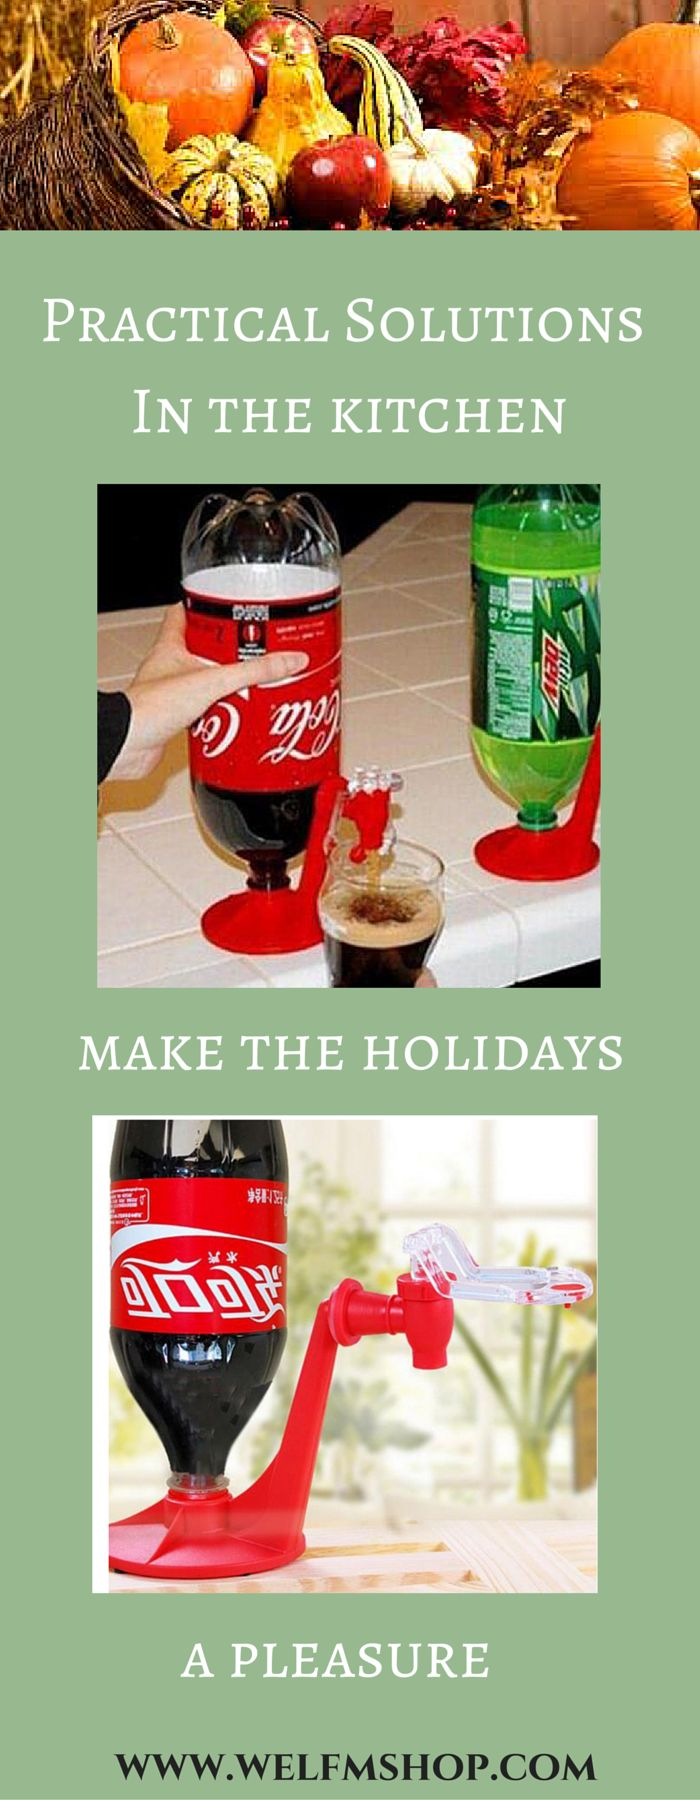 This beverage dispenser is a must have for any holiday or Thanksgiving ideas on your shopping list in 2015. It's a great kitchen gadget at an affordable price.